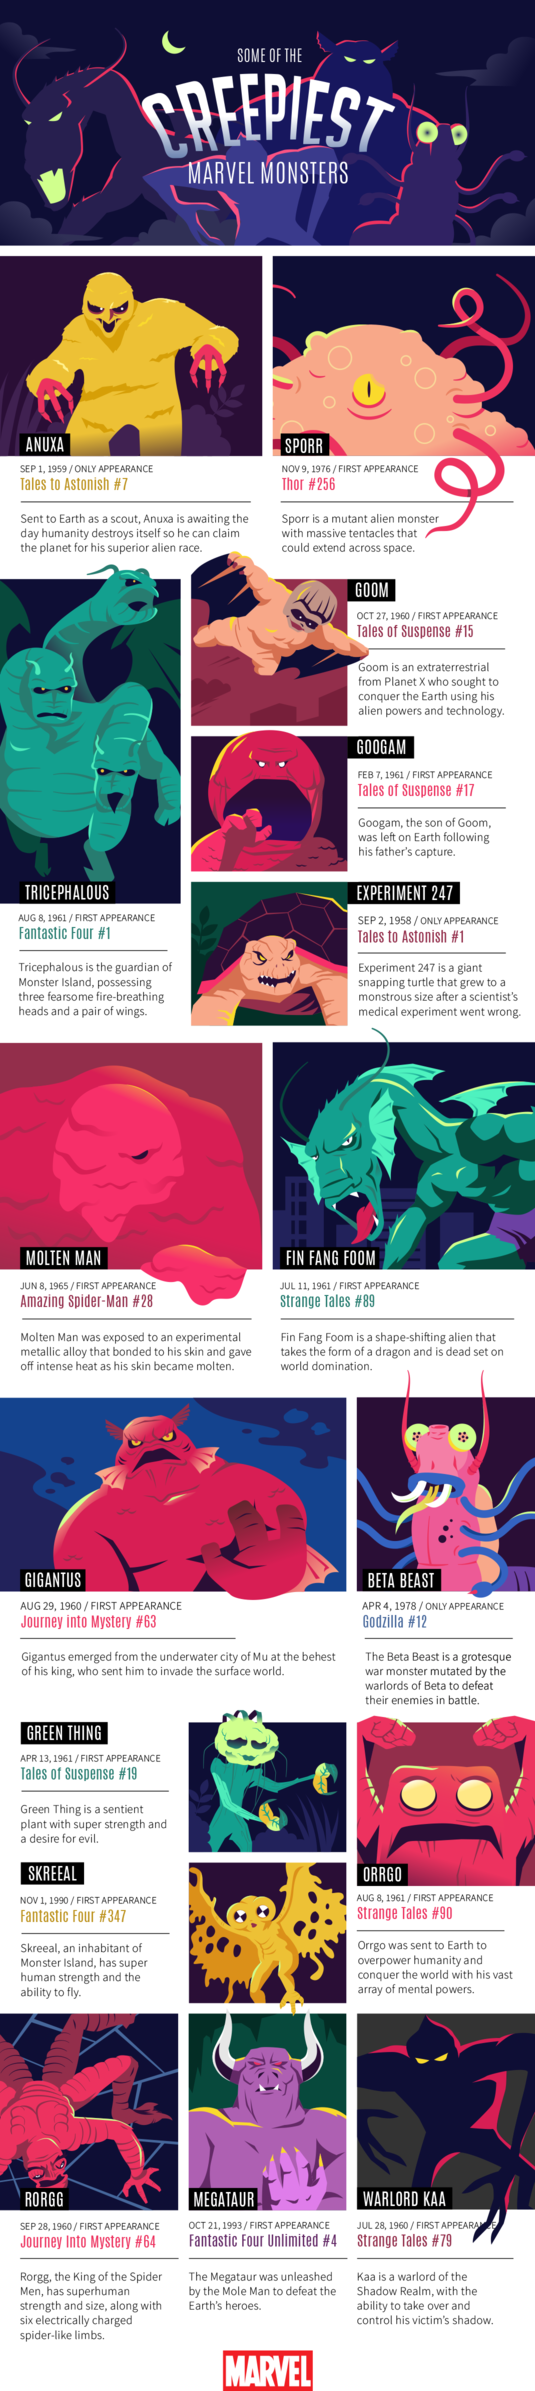 Creepiest Marvel Monsters